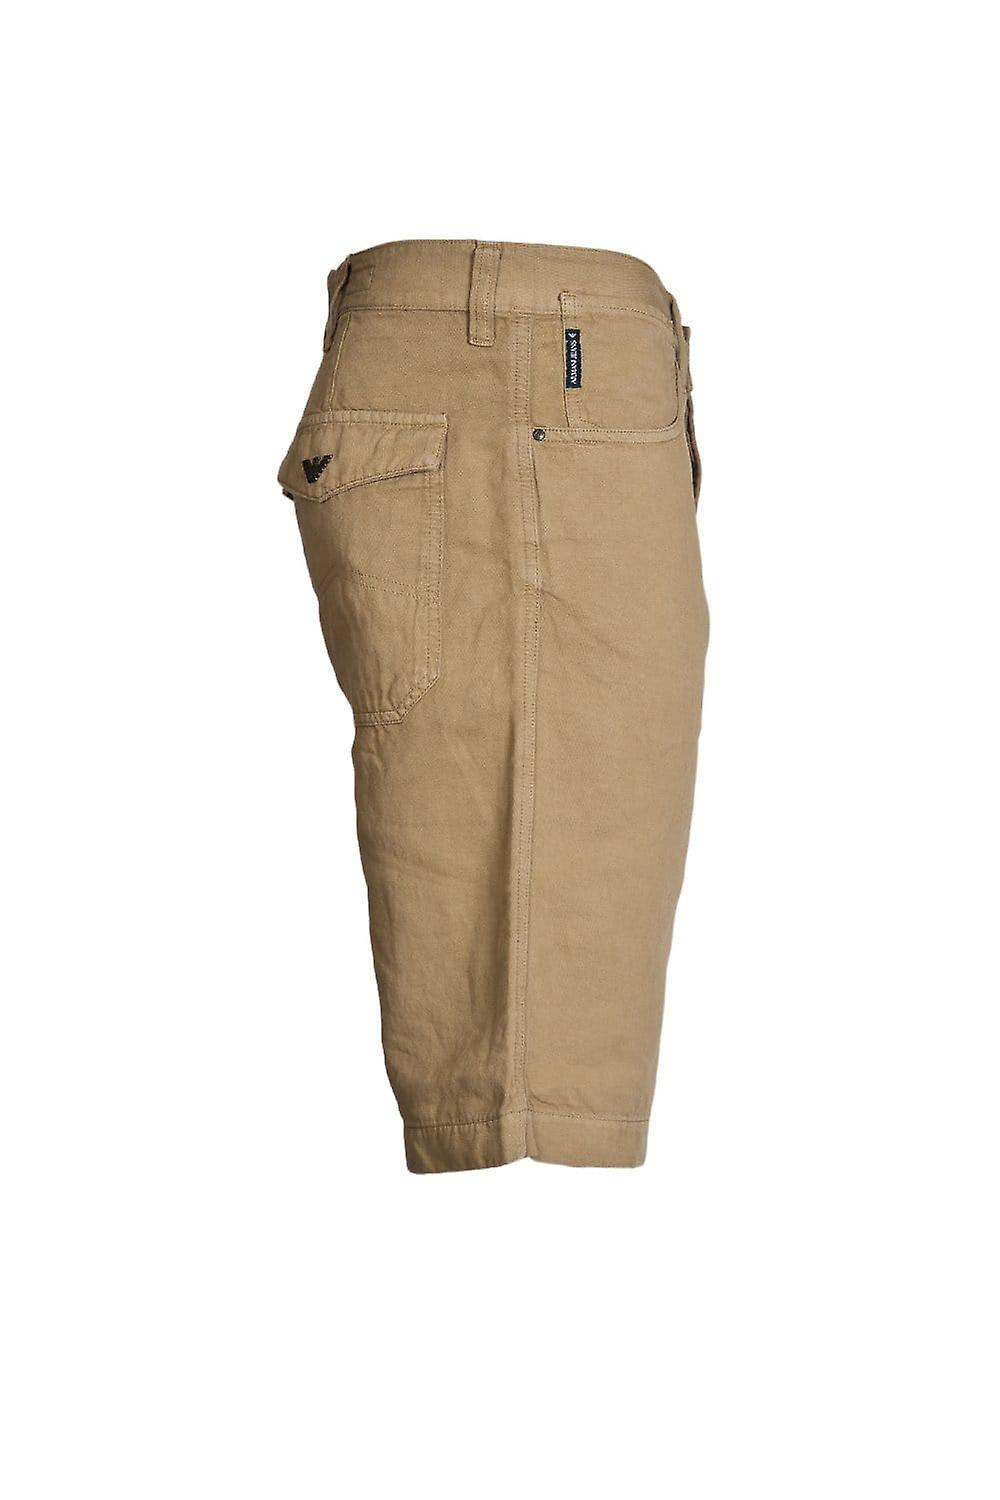 Armani Jeans Armani Jeans Designer Linen Shorts In Red  Black And Khaki Green A6S53KG